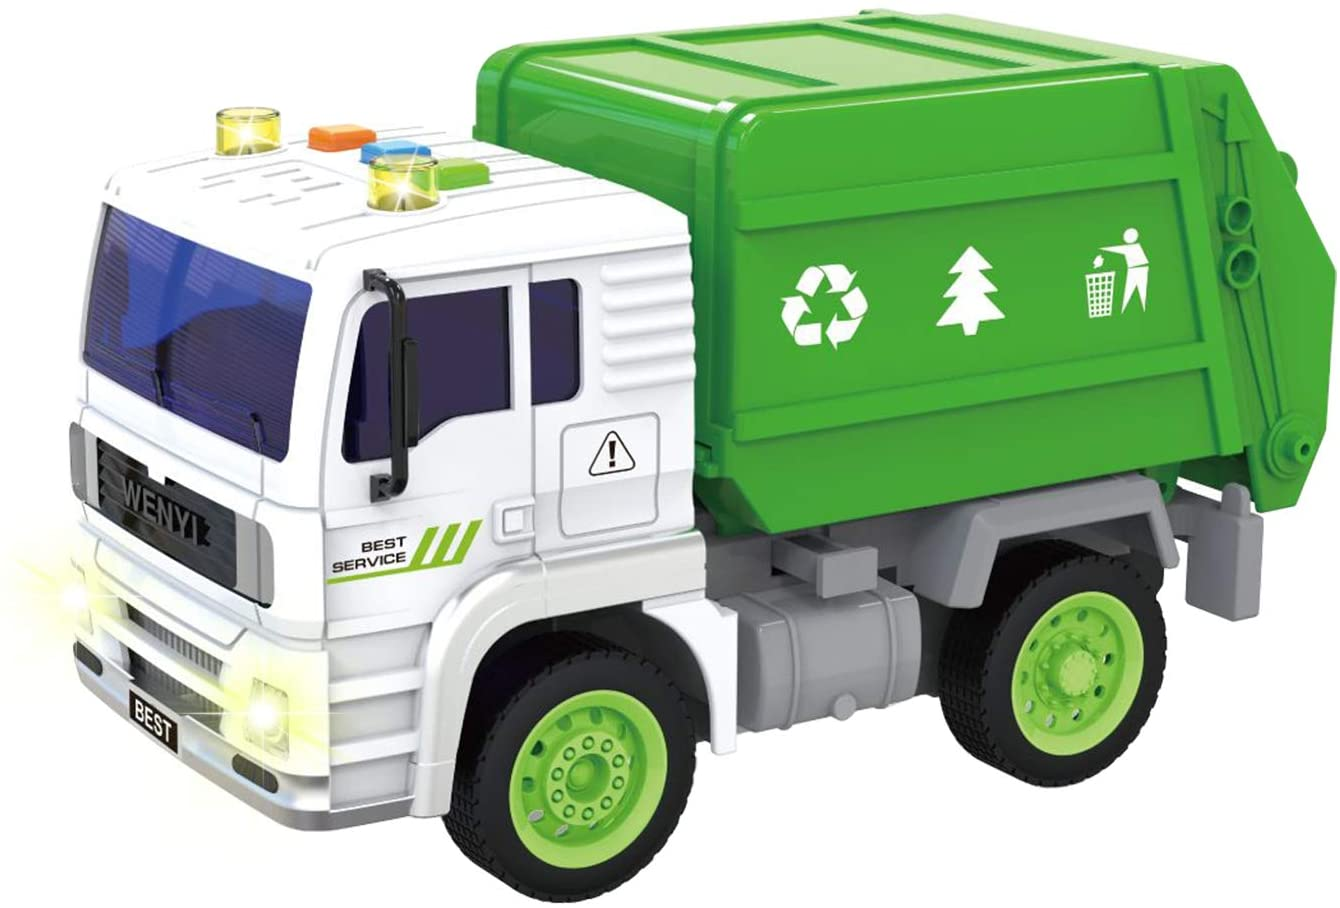 FUGZ Garbage Truck Toys for Boys, Friction Powered Toy Cars with Lights and Sounds(1:20)